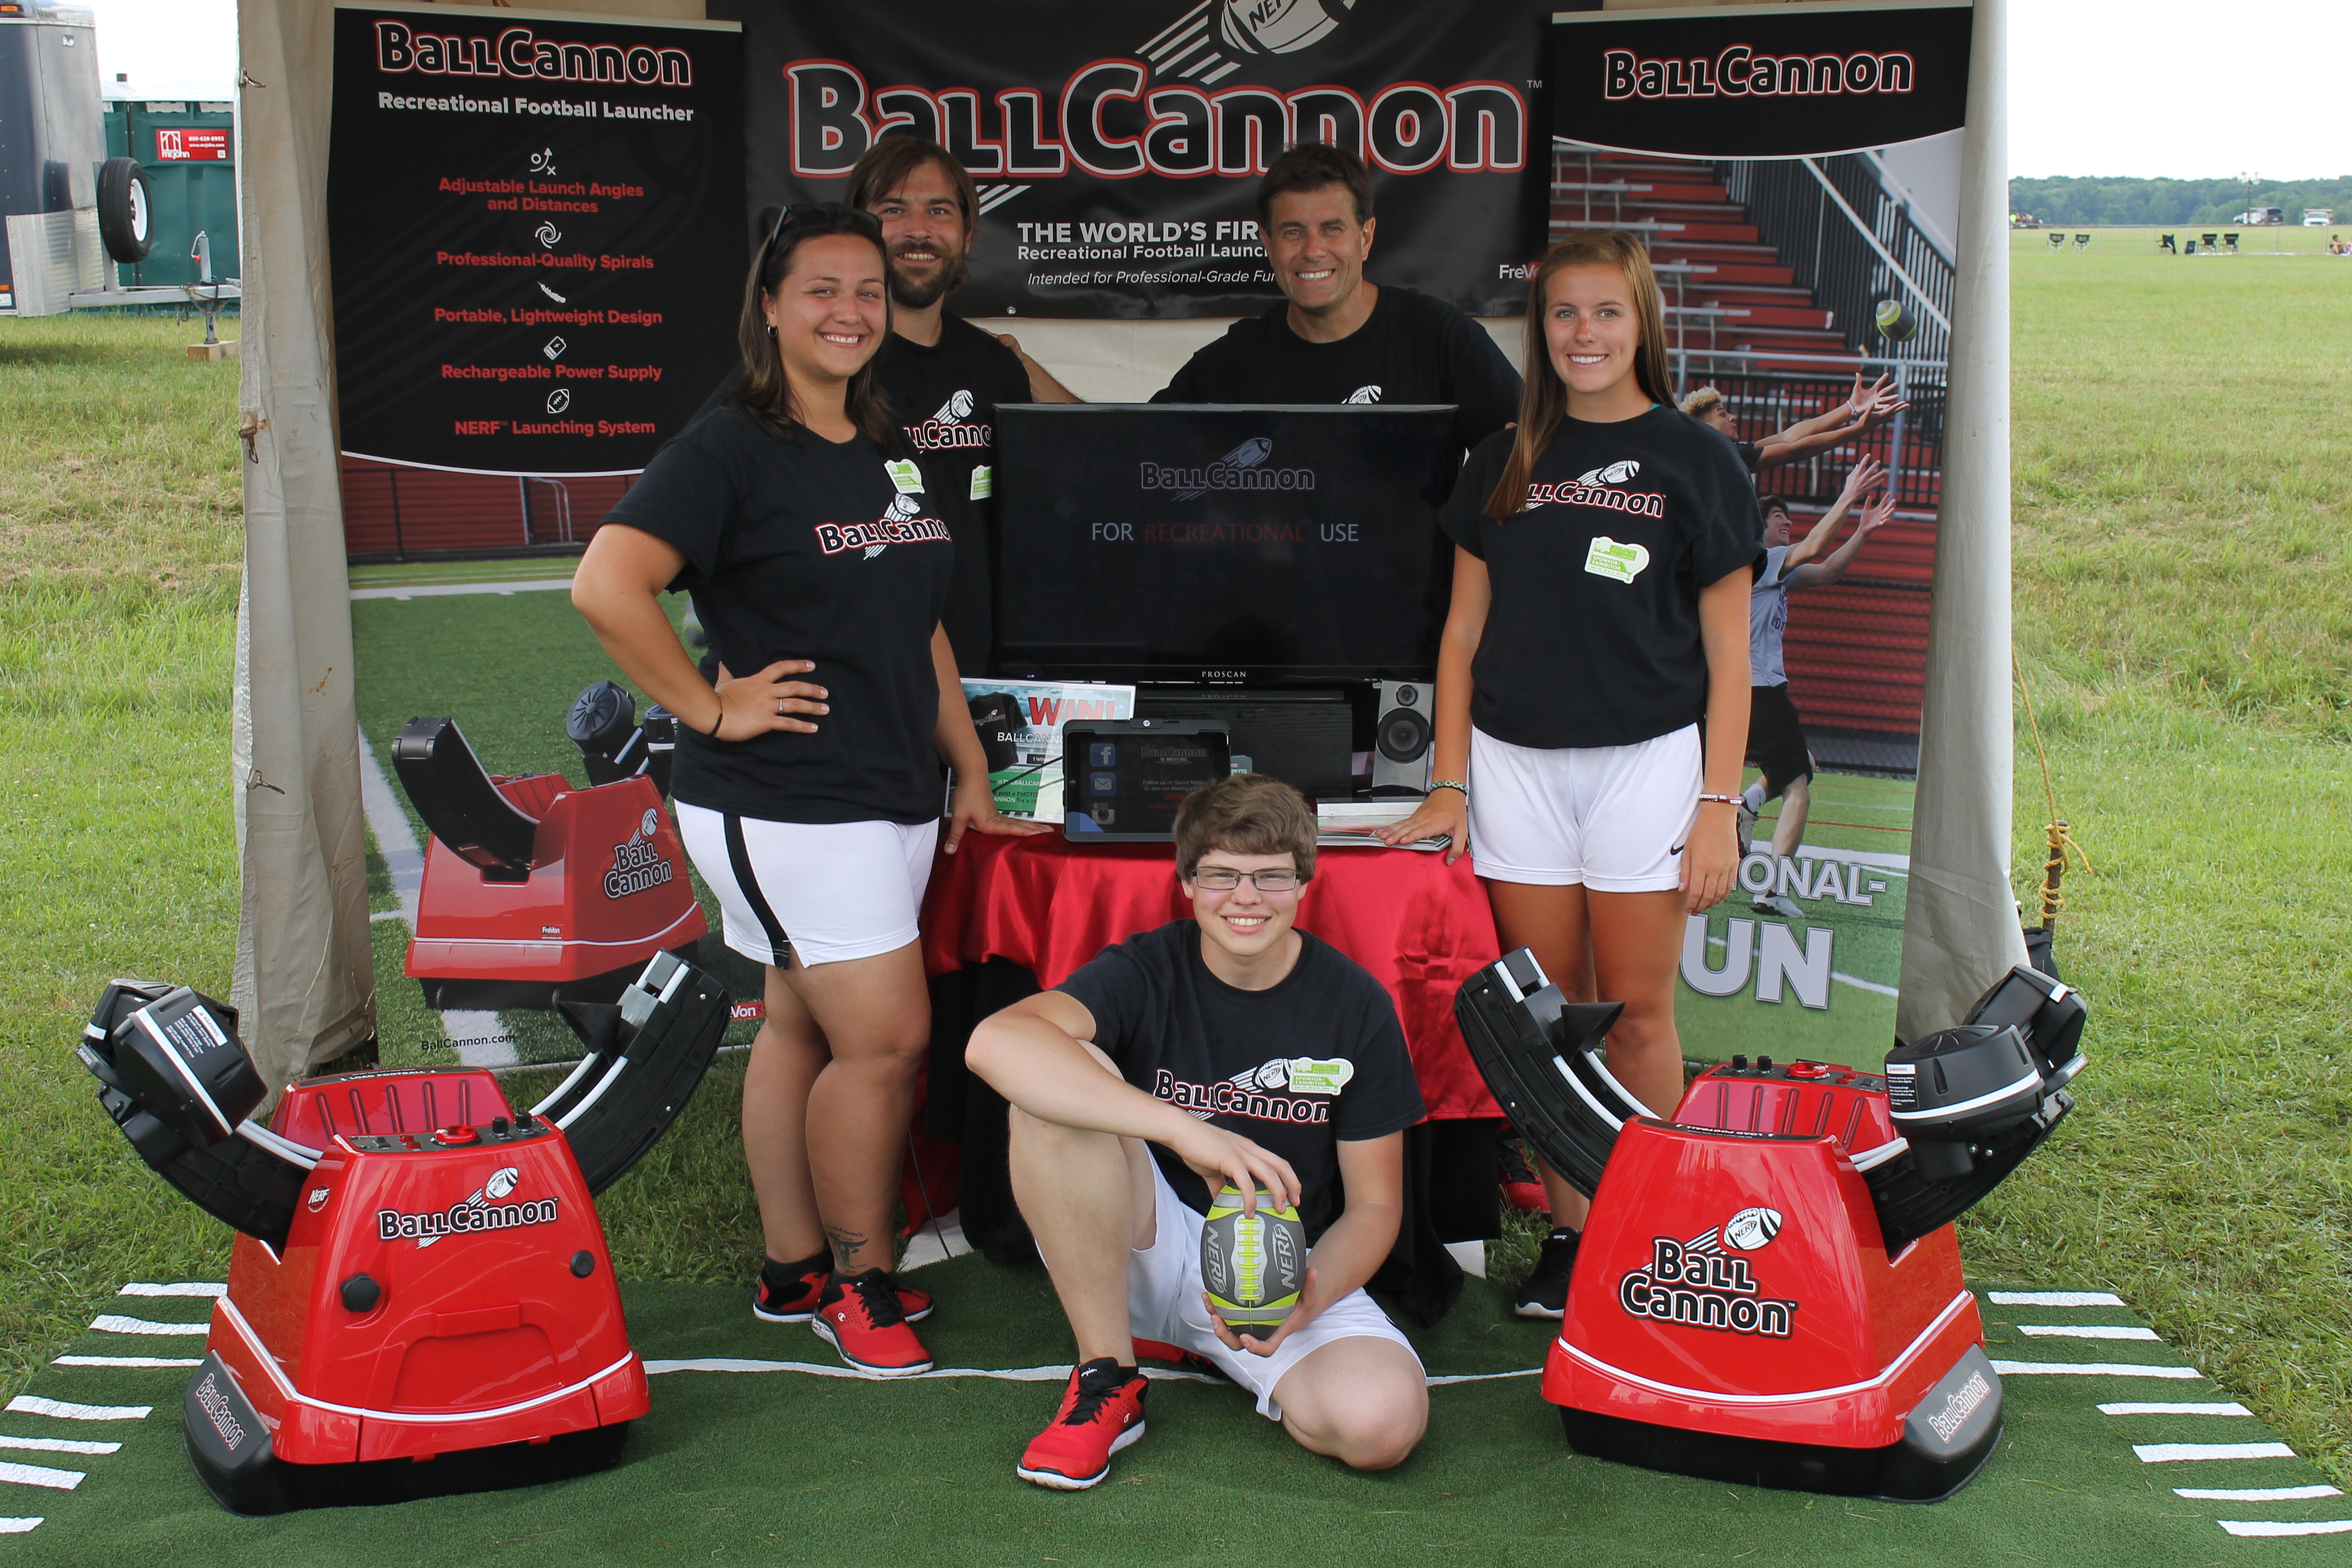 The Ball Cannon team pose for a photo at the NJ Balloon Festival